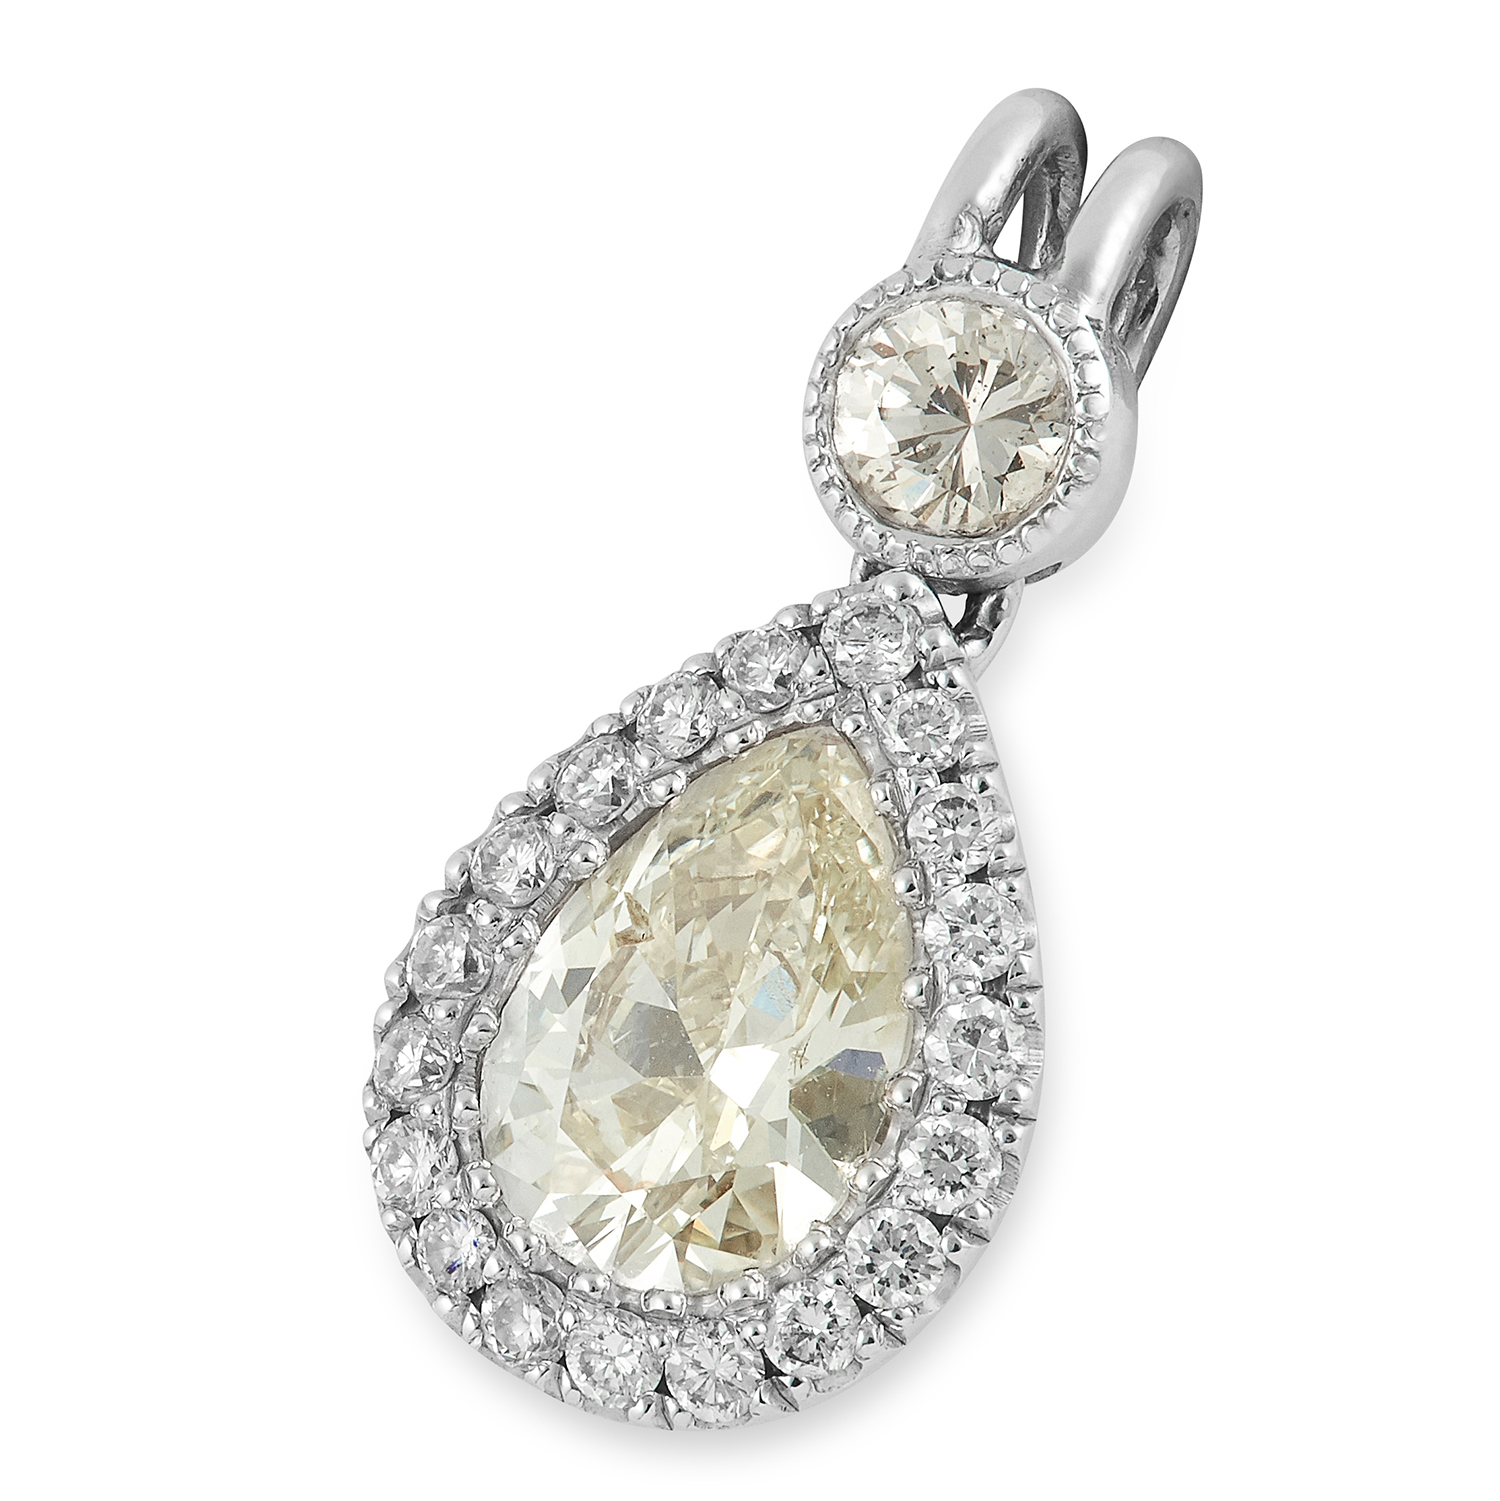 DIAMOND PENDANT set with a central pear cut diamond in a halo of round cut diamonds, 2cm, 1.5g.